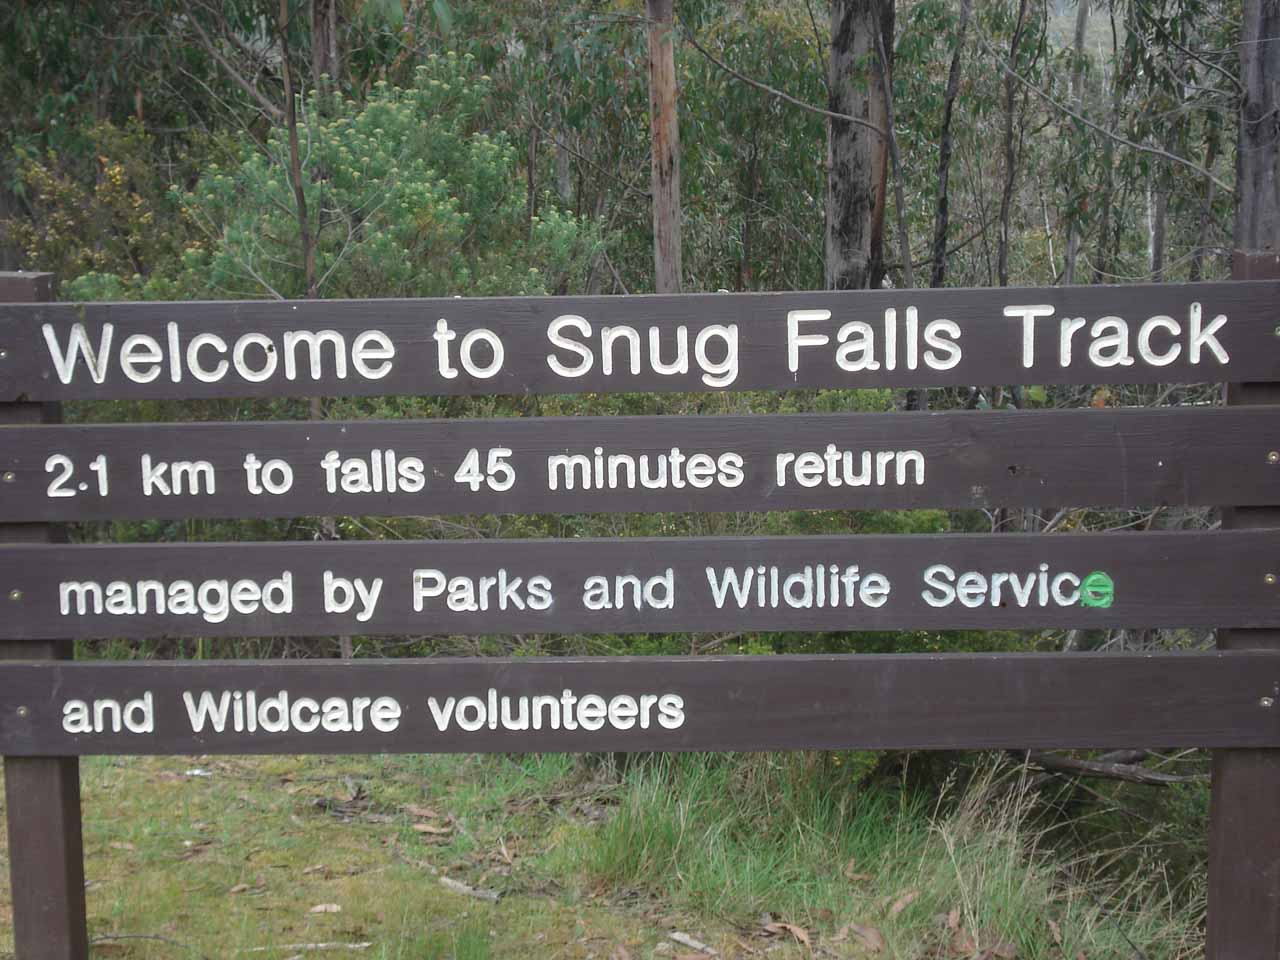 More signage telling us the level of exertion necessary to do this hike to Snug Falls